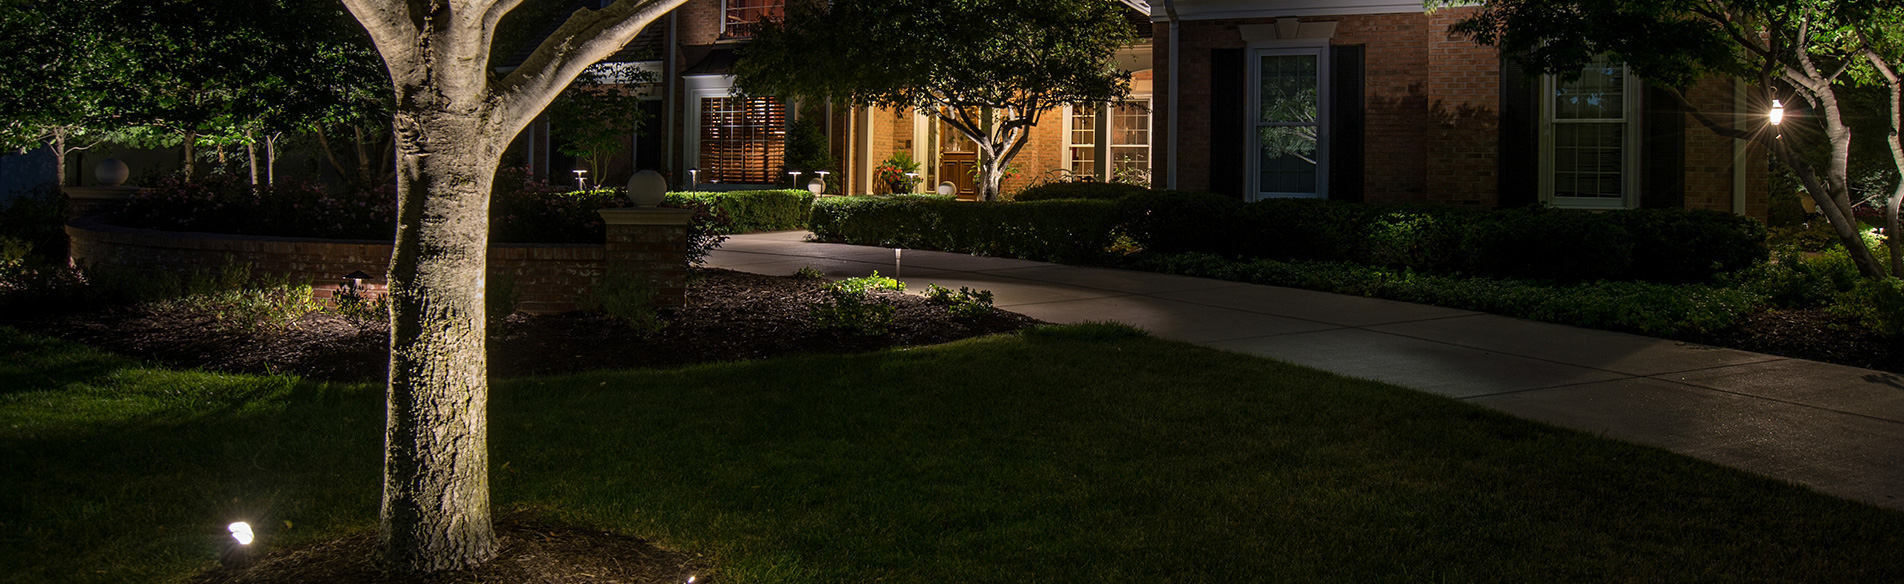 Landscape Lighting Buffalo NY